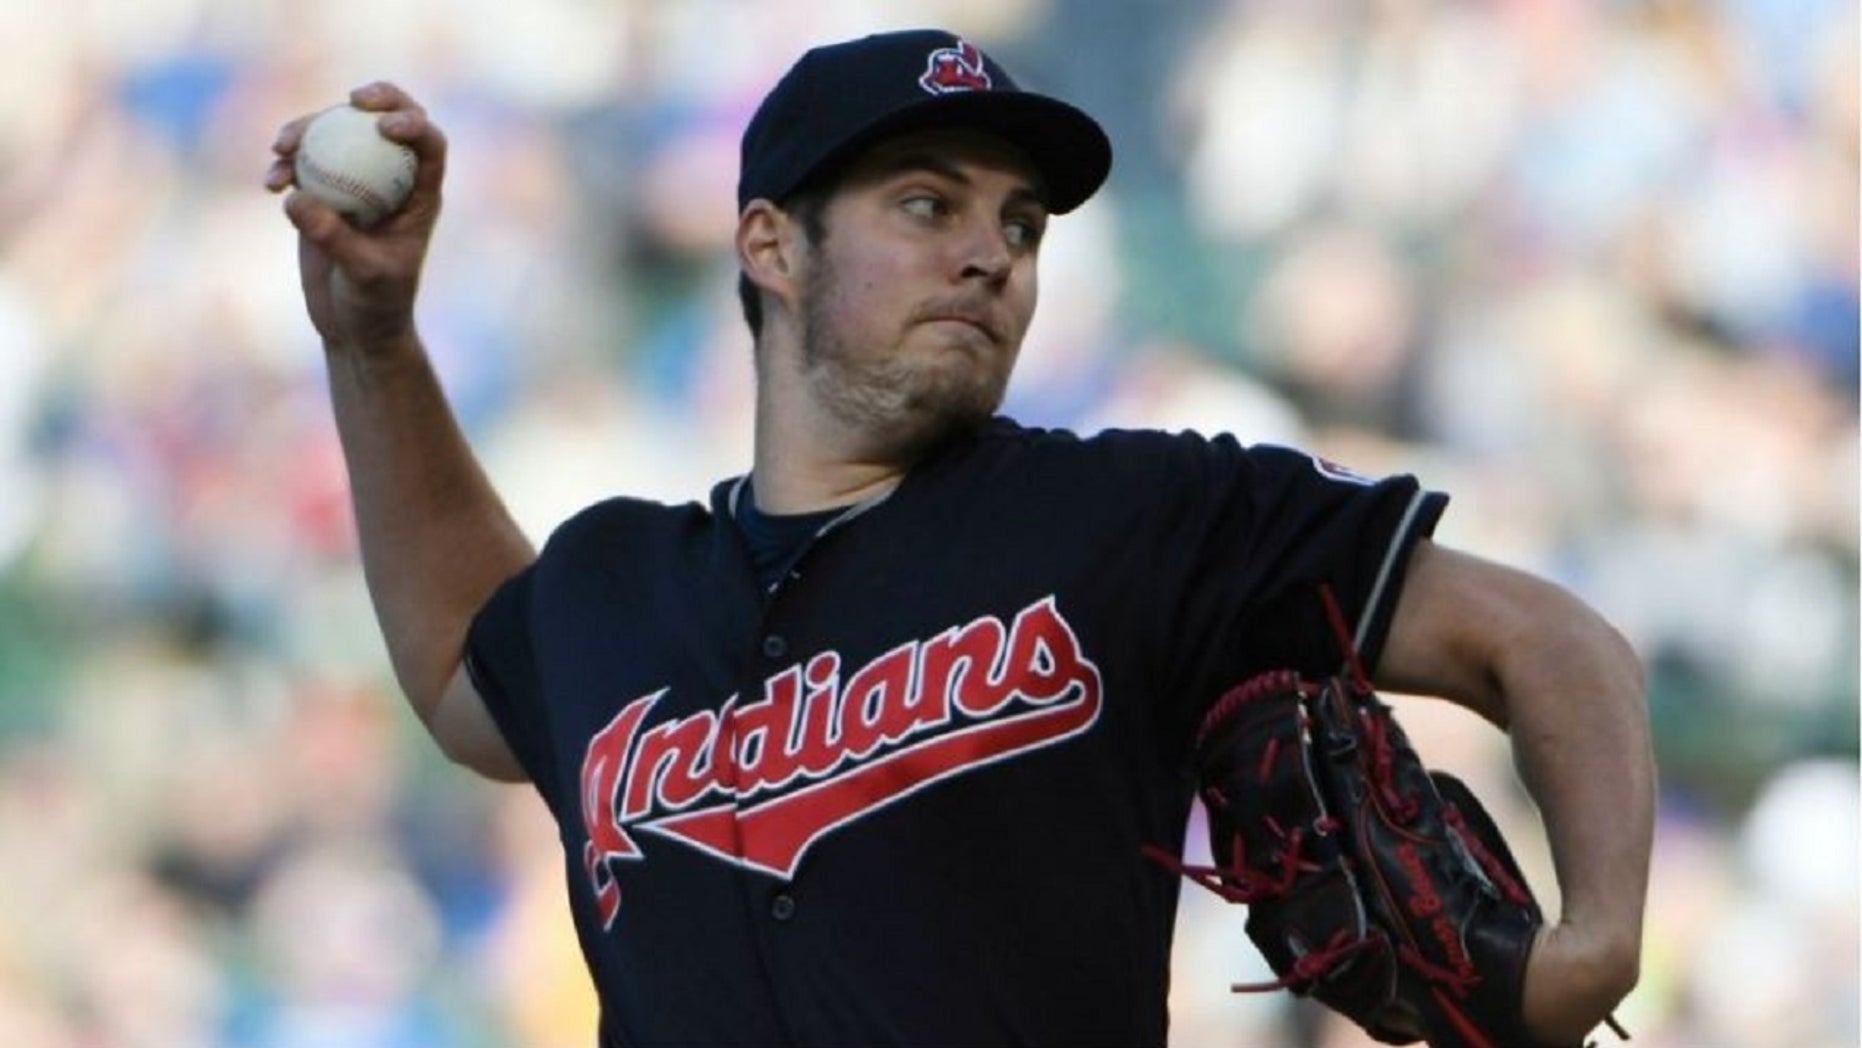 A college student is accusing Cleveland Indians pitcher Trevor Bauer of harassment over Twitter.